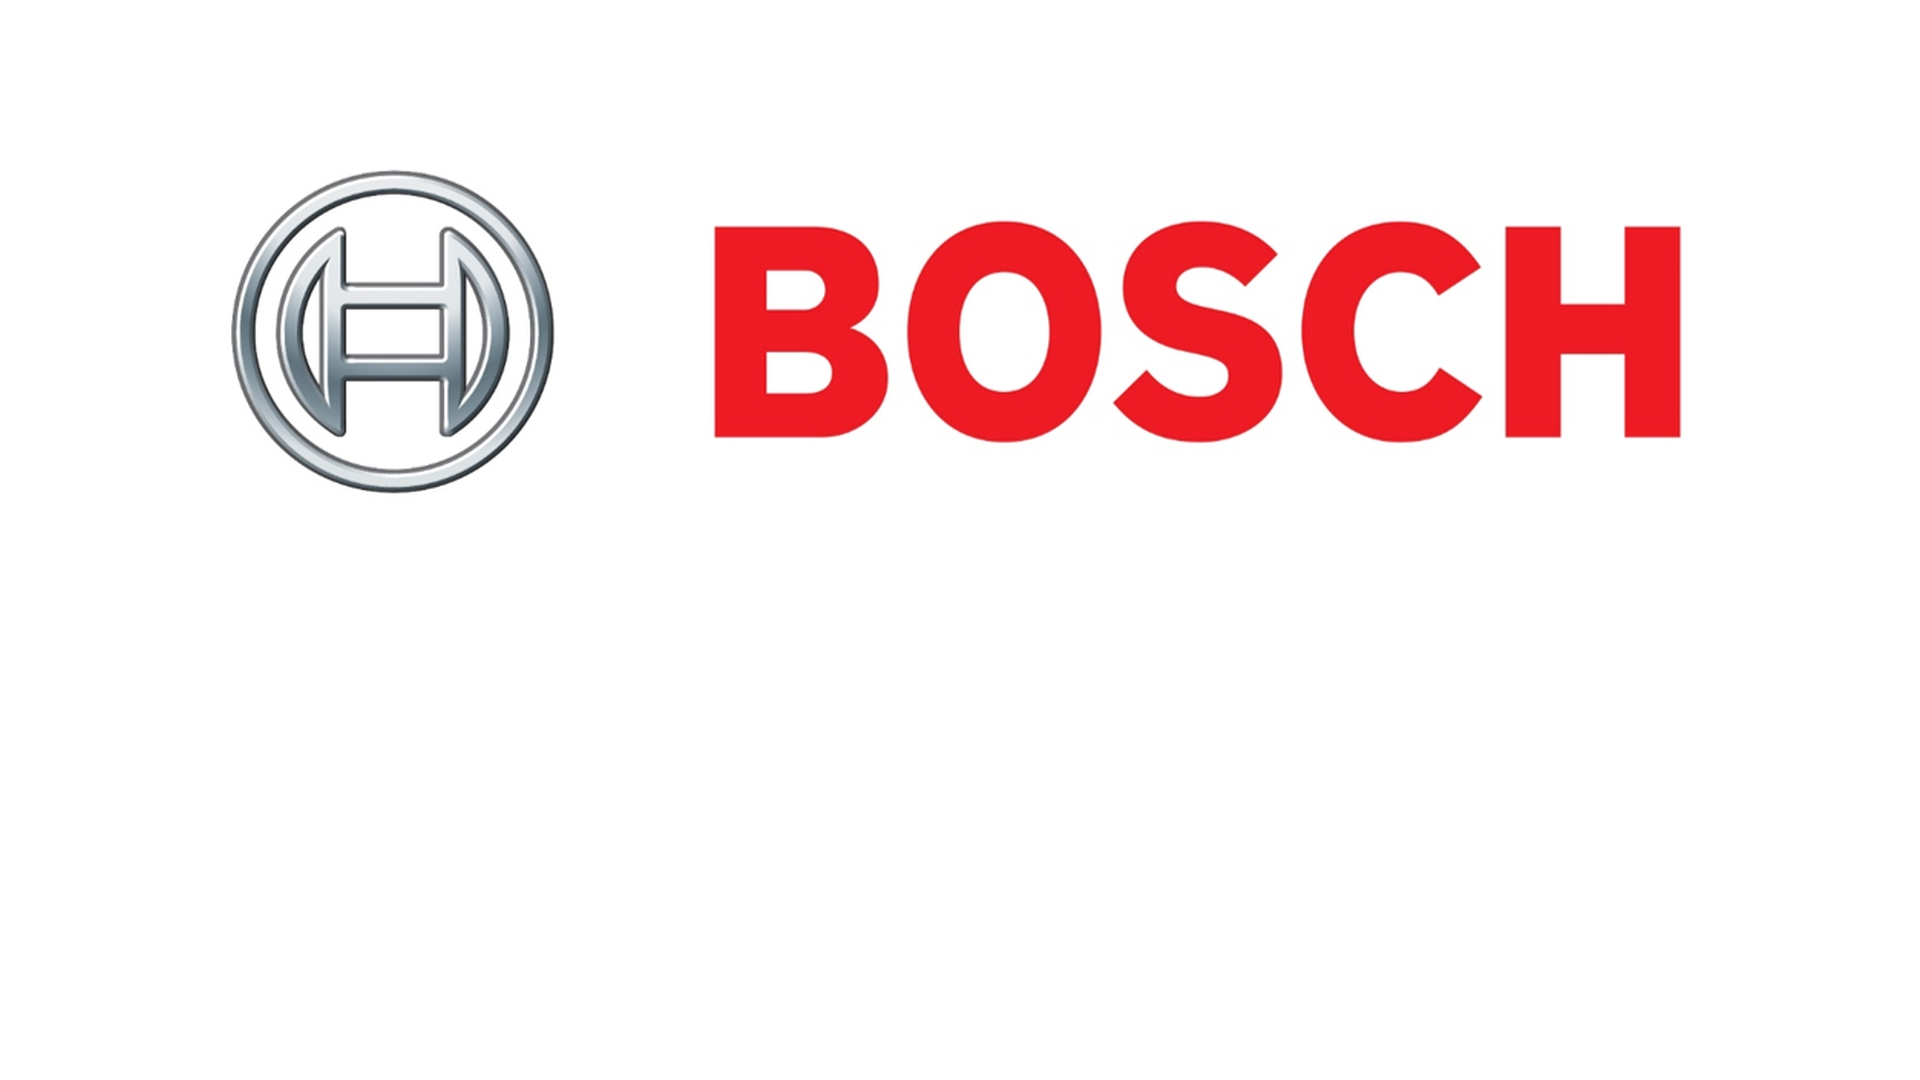 The power tool plant of the Bosch Group is expanding in Miskolc